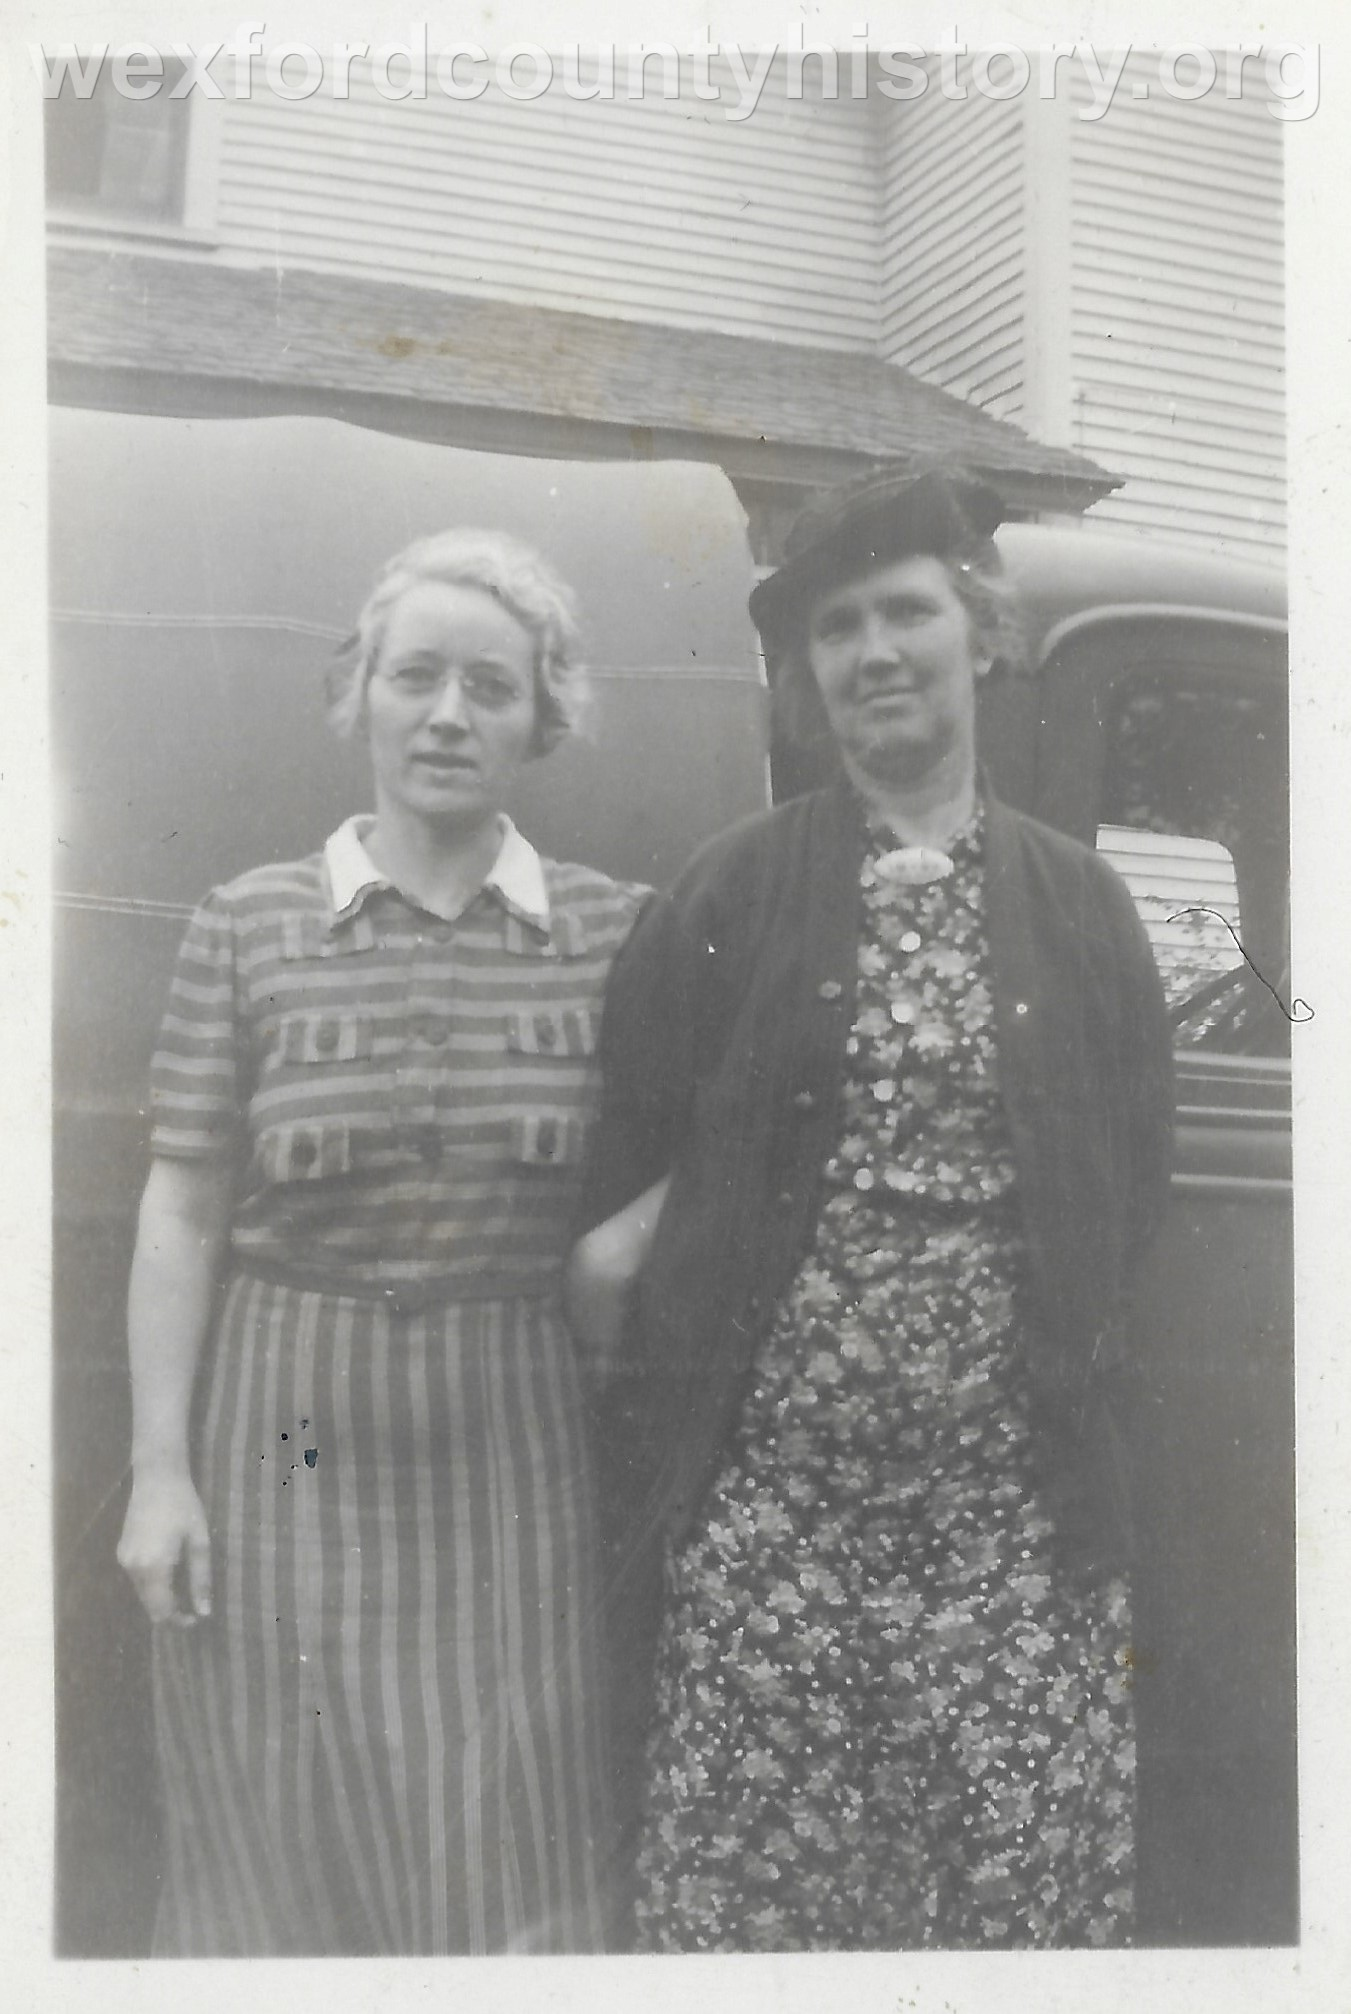 Brehm and Beatrice on the corner of South Mitchell and South Street